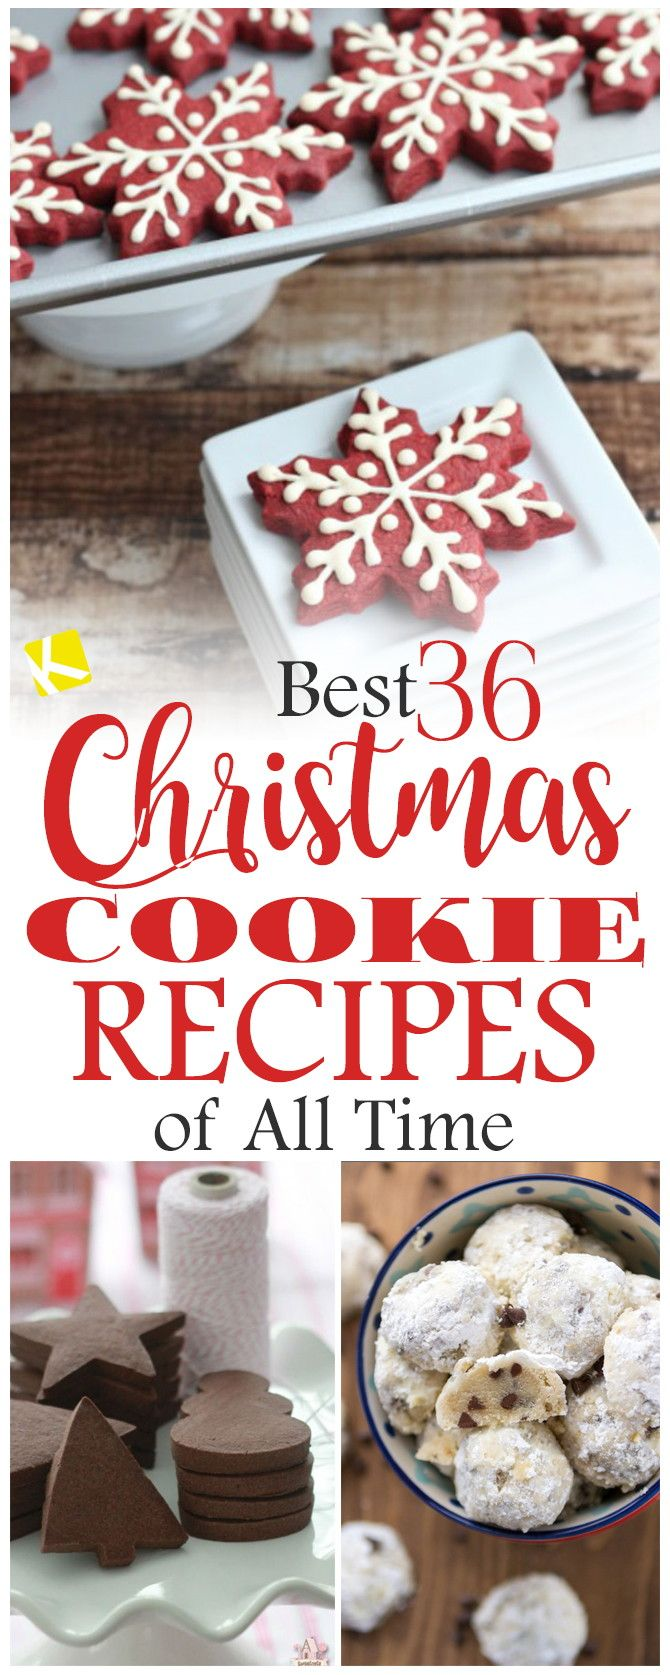 Best 36 Christmas Cookie Recipes of All Time